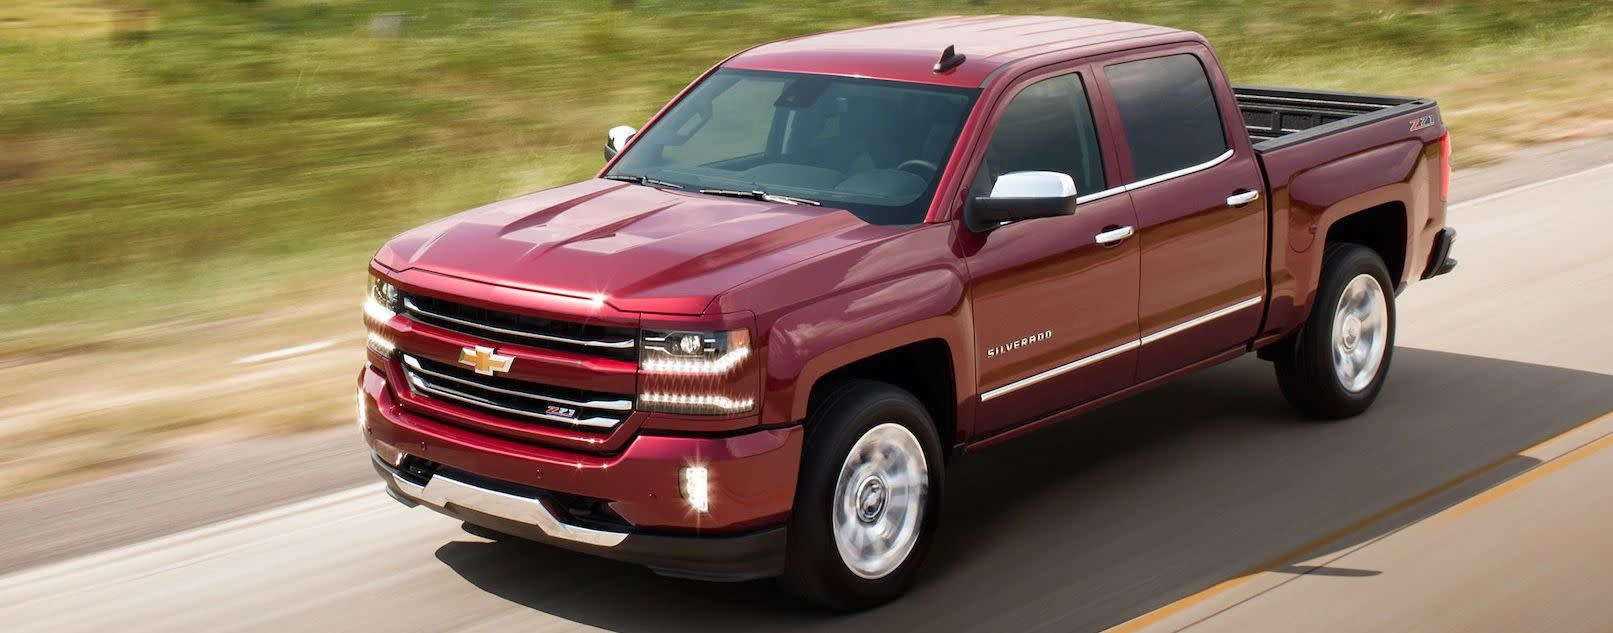 Financiamiento del Chevrolet Silverado 2018 cerca de Escondido, CA